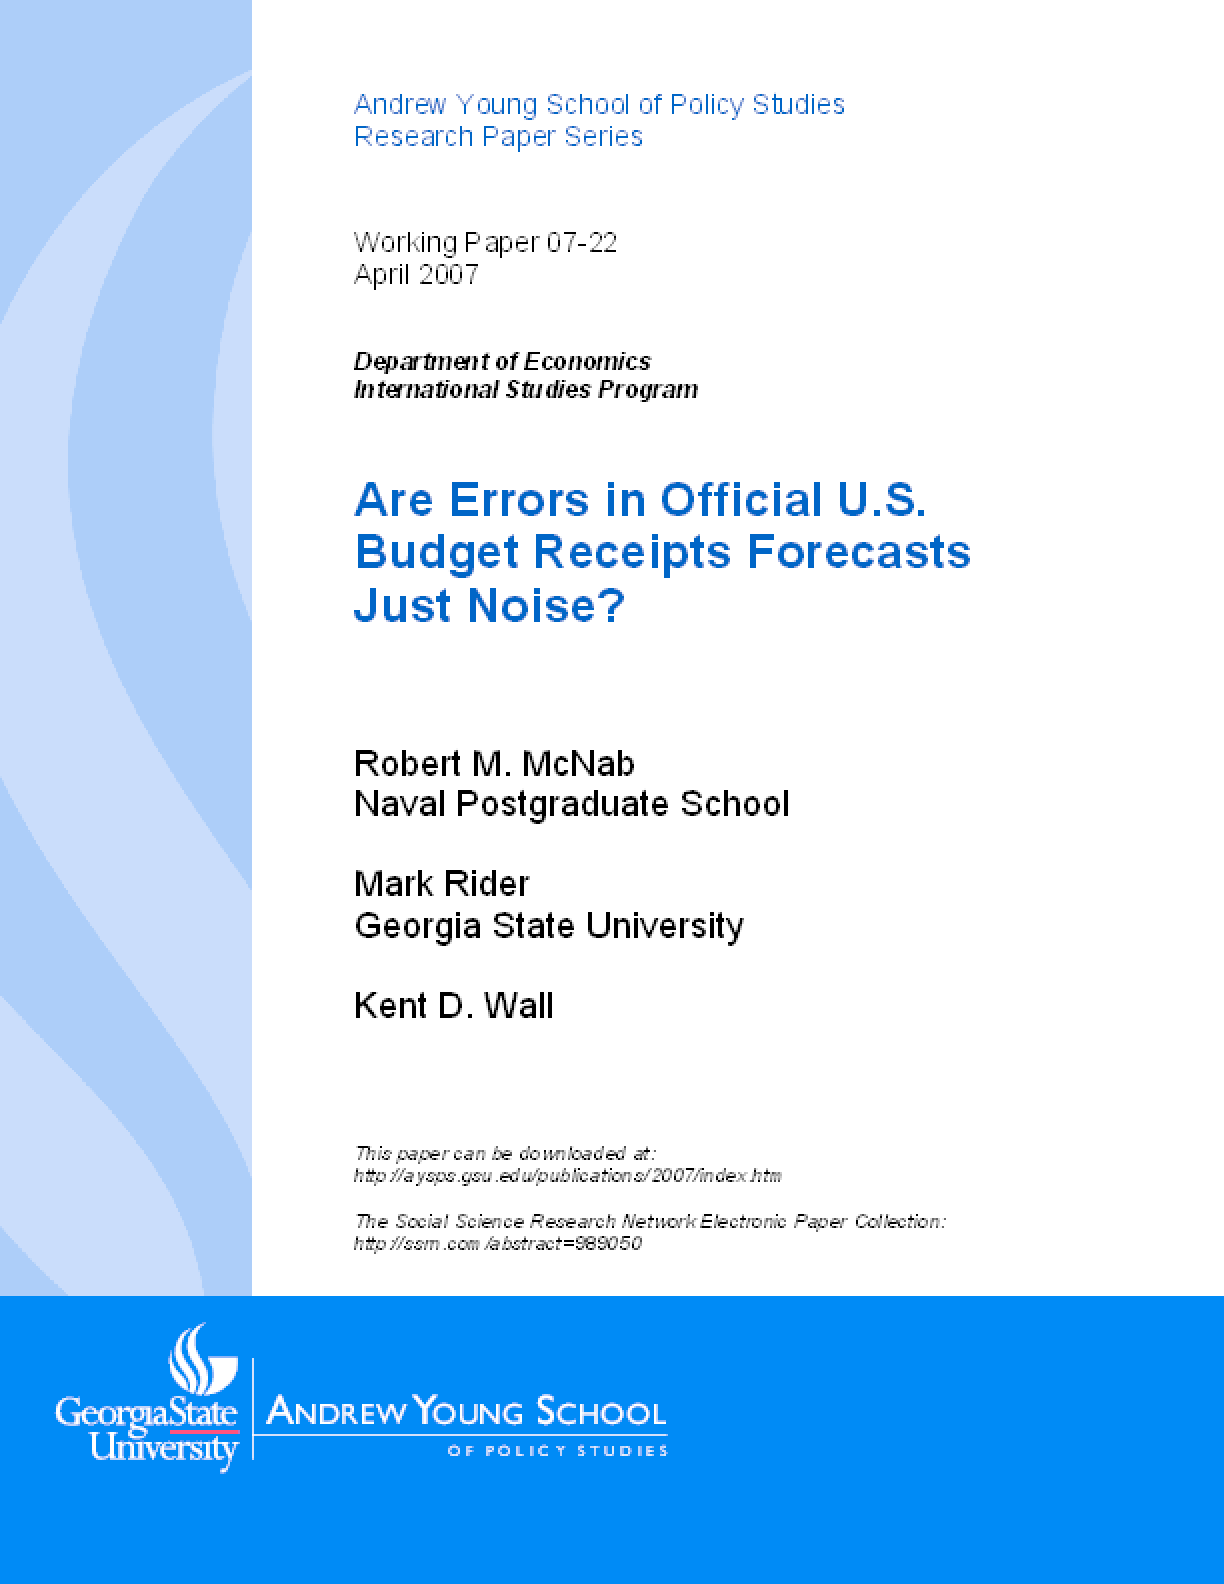 Are Errors in Official U.S. Budget Receipts Forecasts Just Noise?